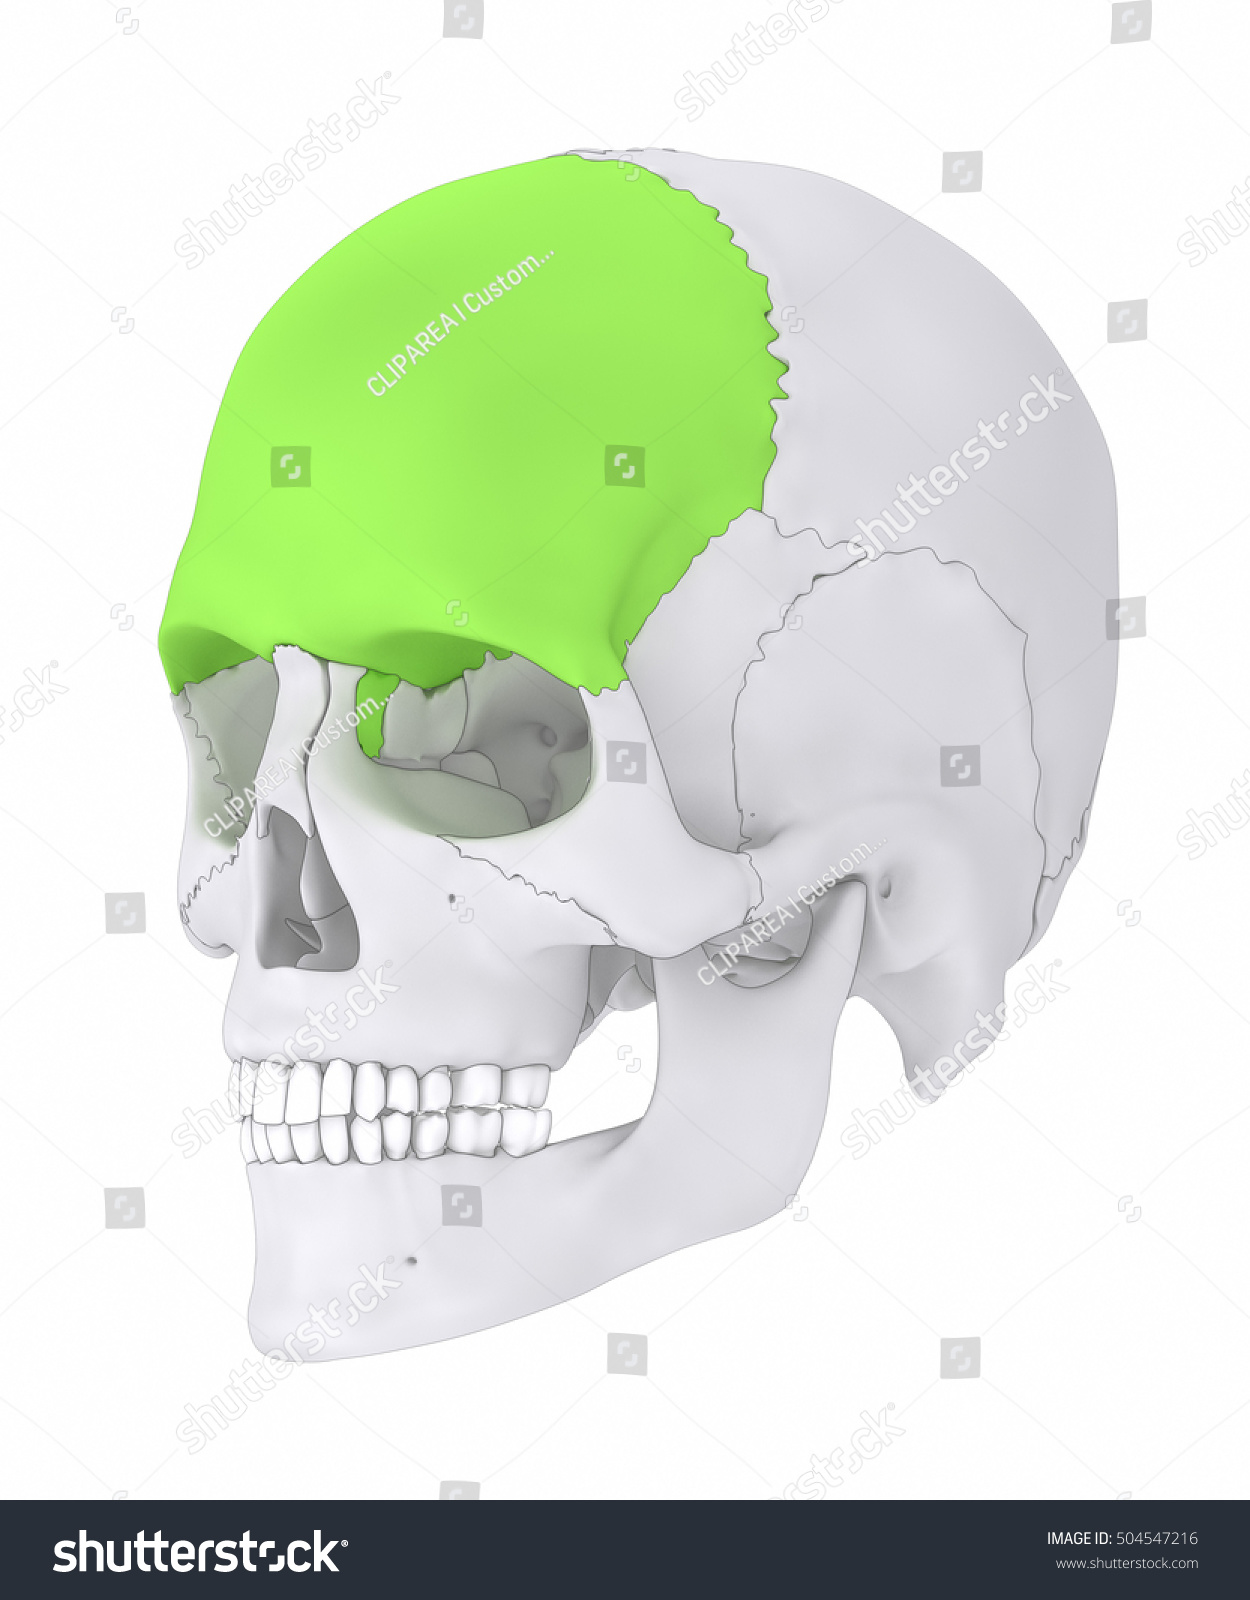 Frontal Bone Os Frontale 3 D Illustration Stock Illustration